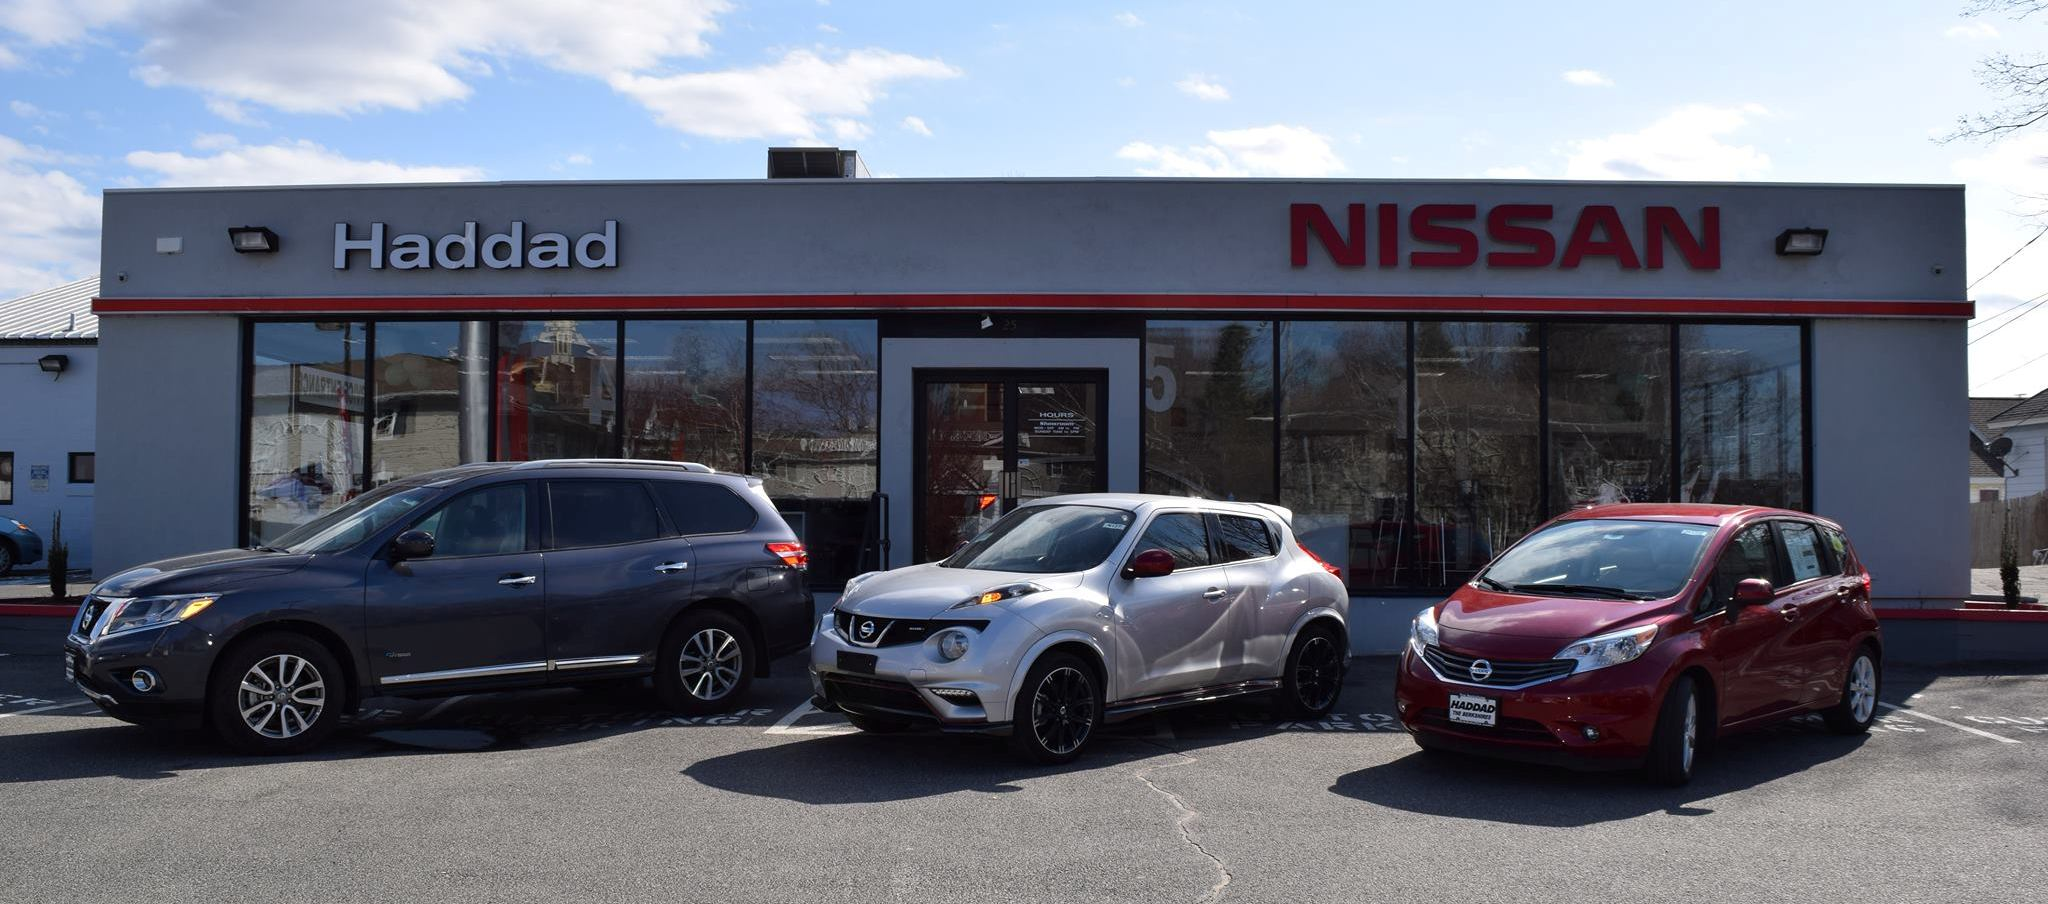 Haddad Nissan in Pittsfield, MA